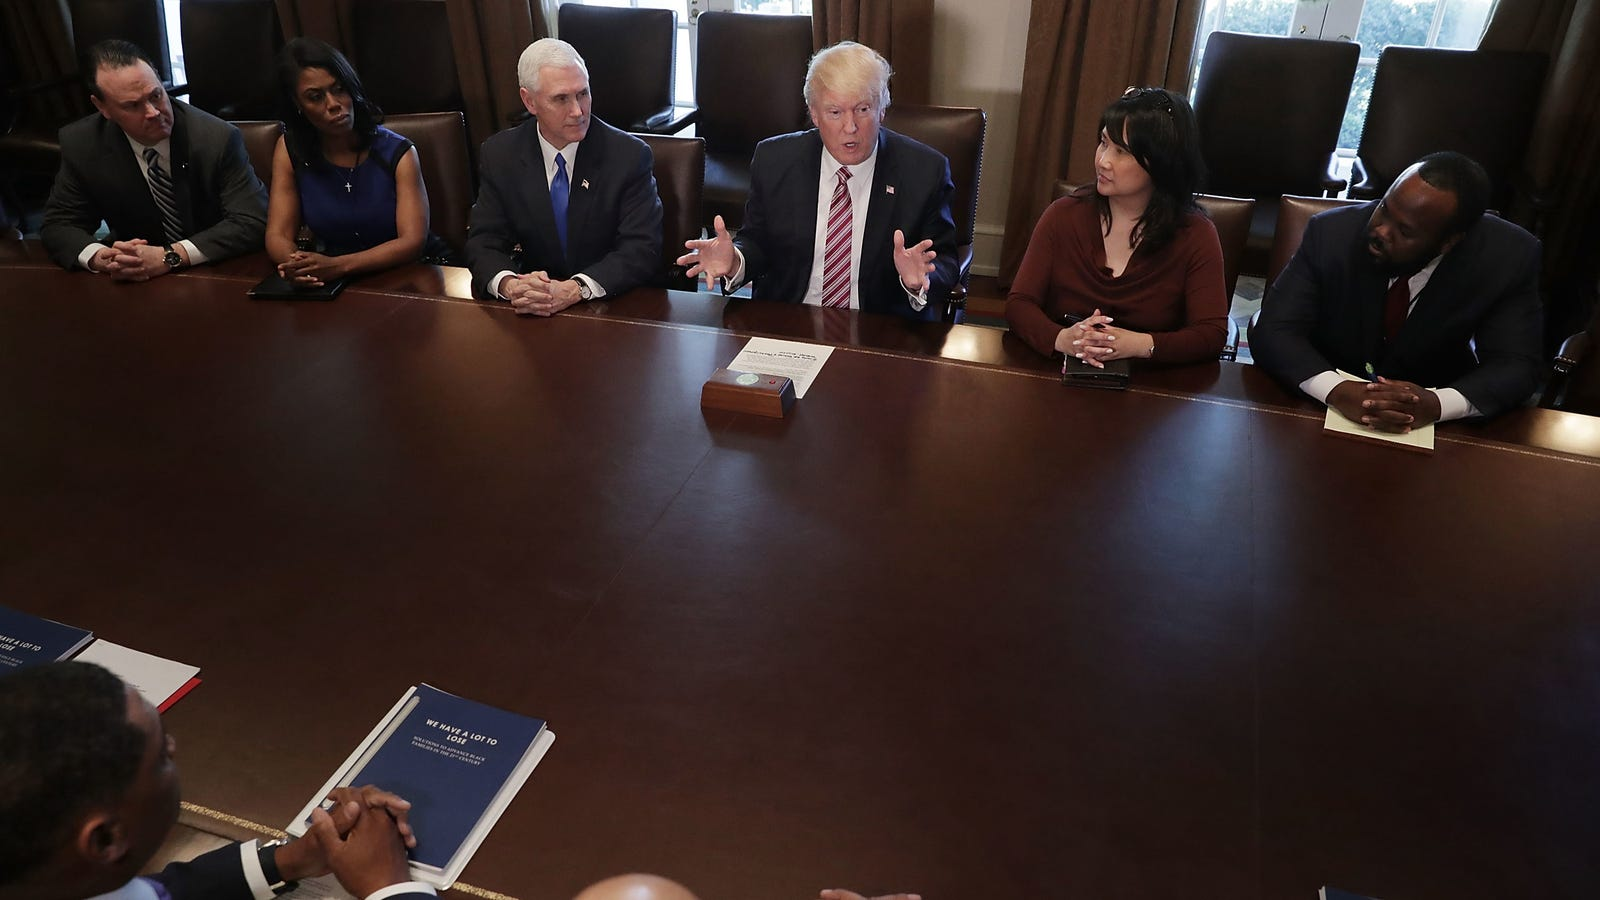 'Everyone Knows' Former White House Staffer Omarosa Loved Taping Meetings